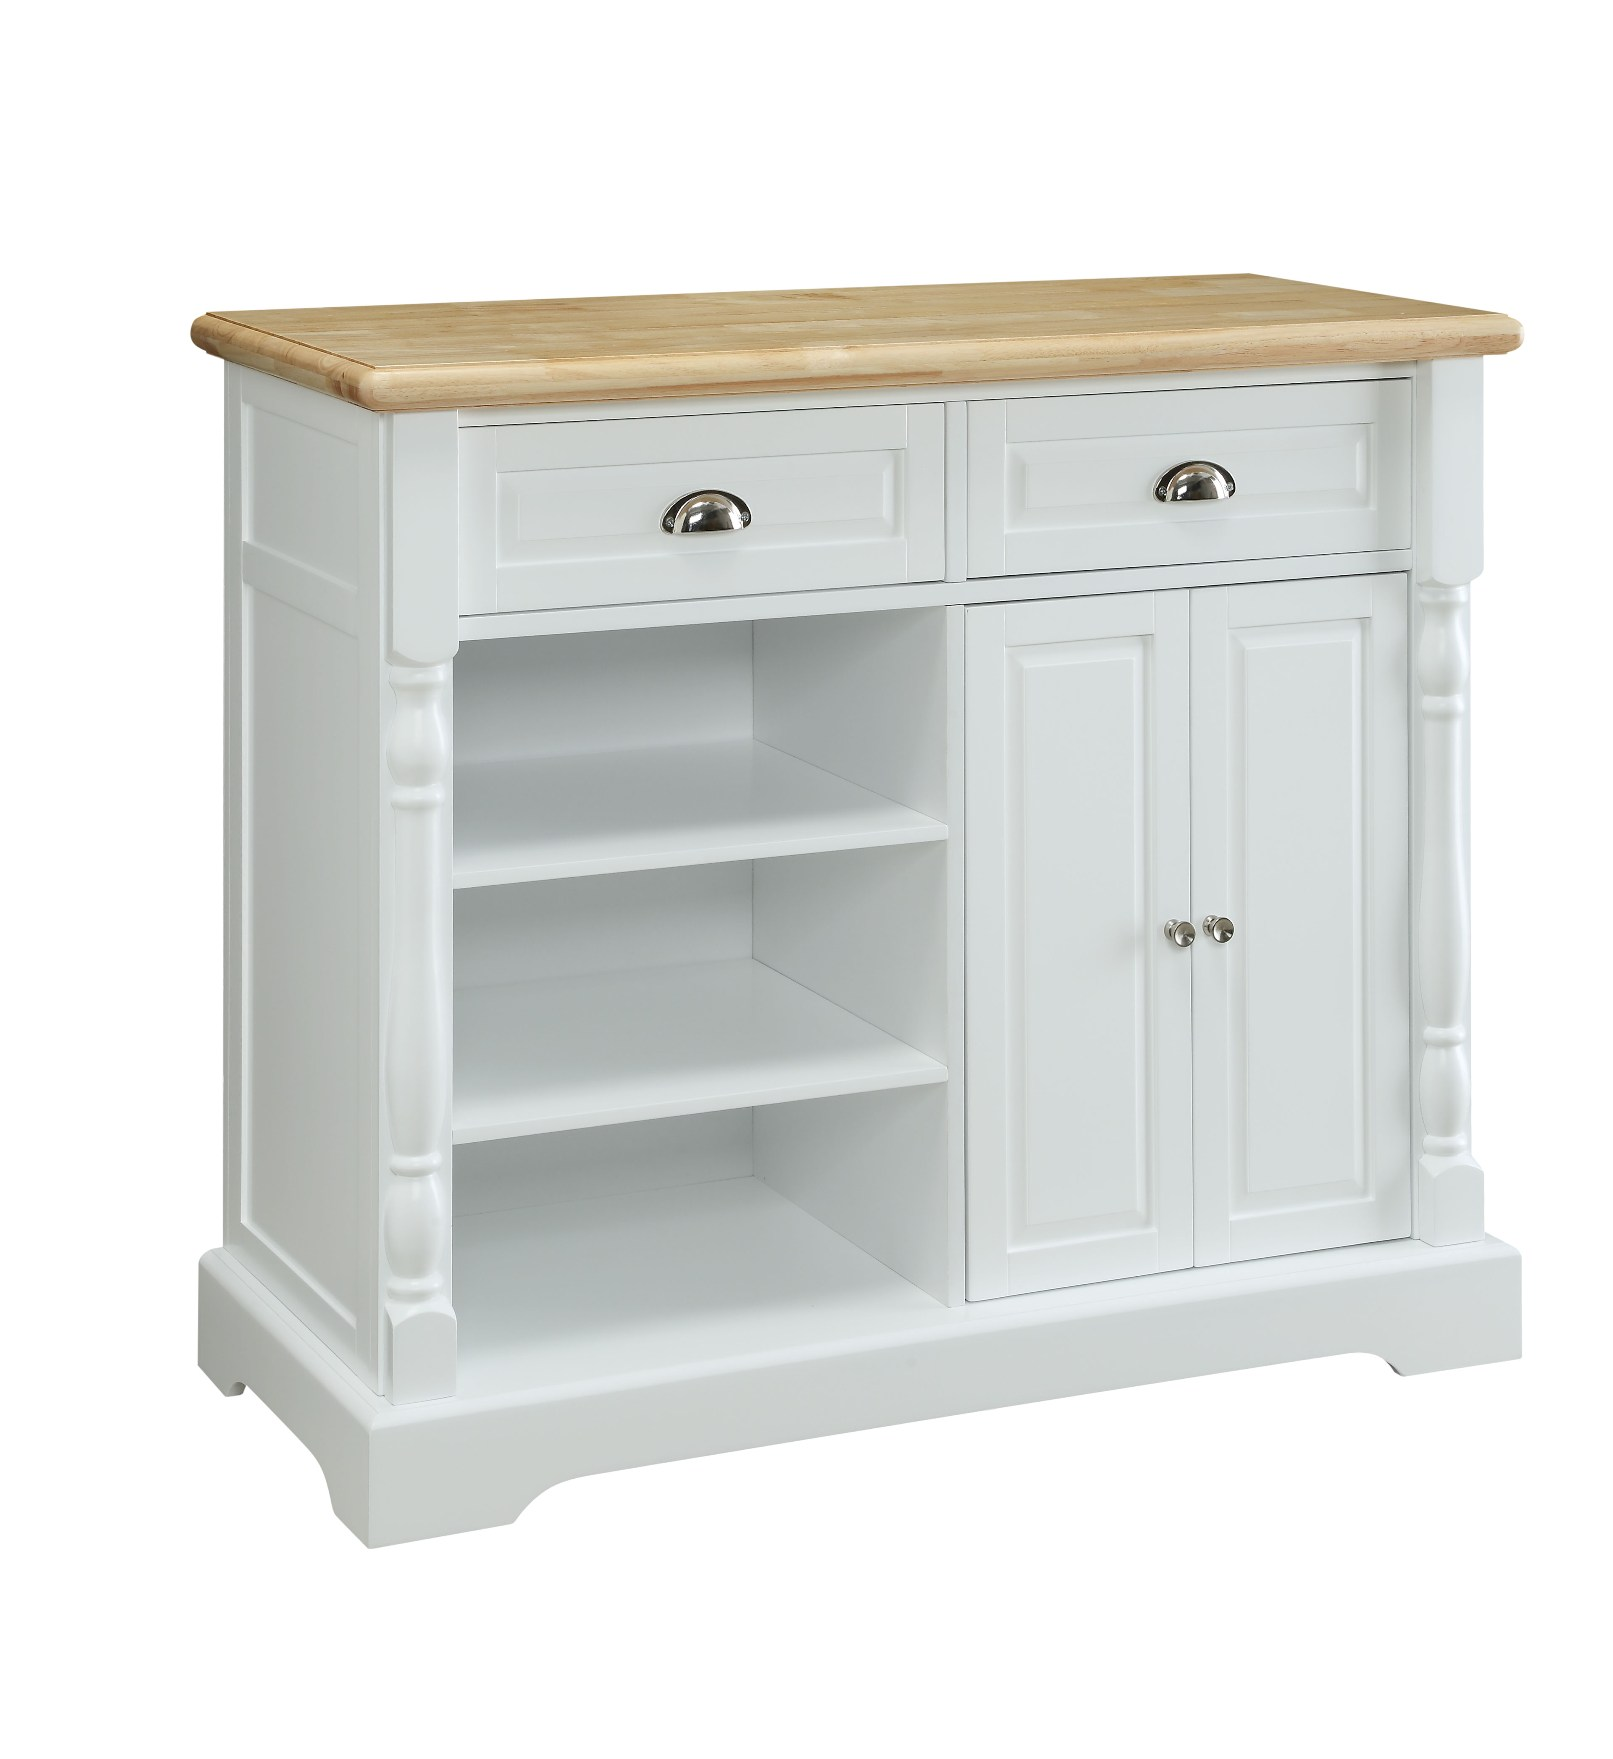 kmart kitchen lowes sinks essential home cart white natural